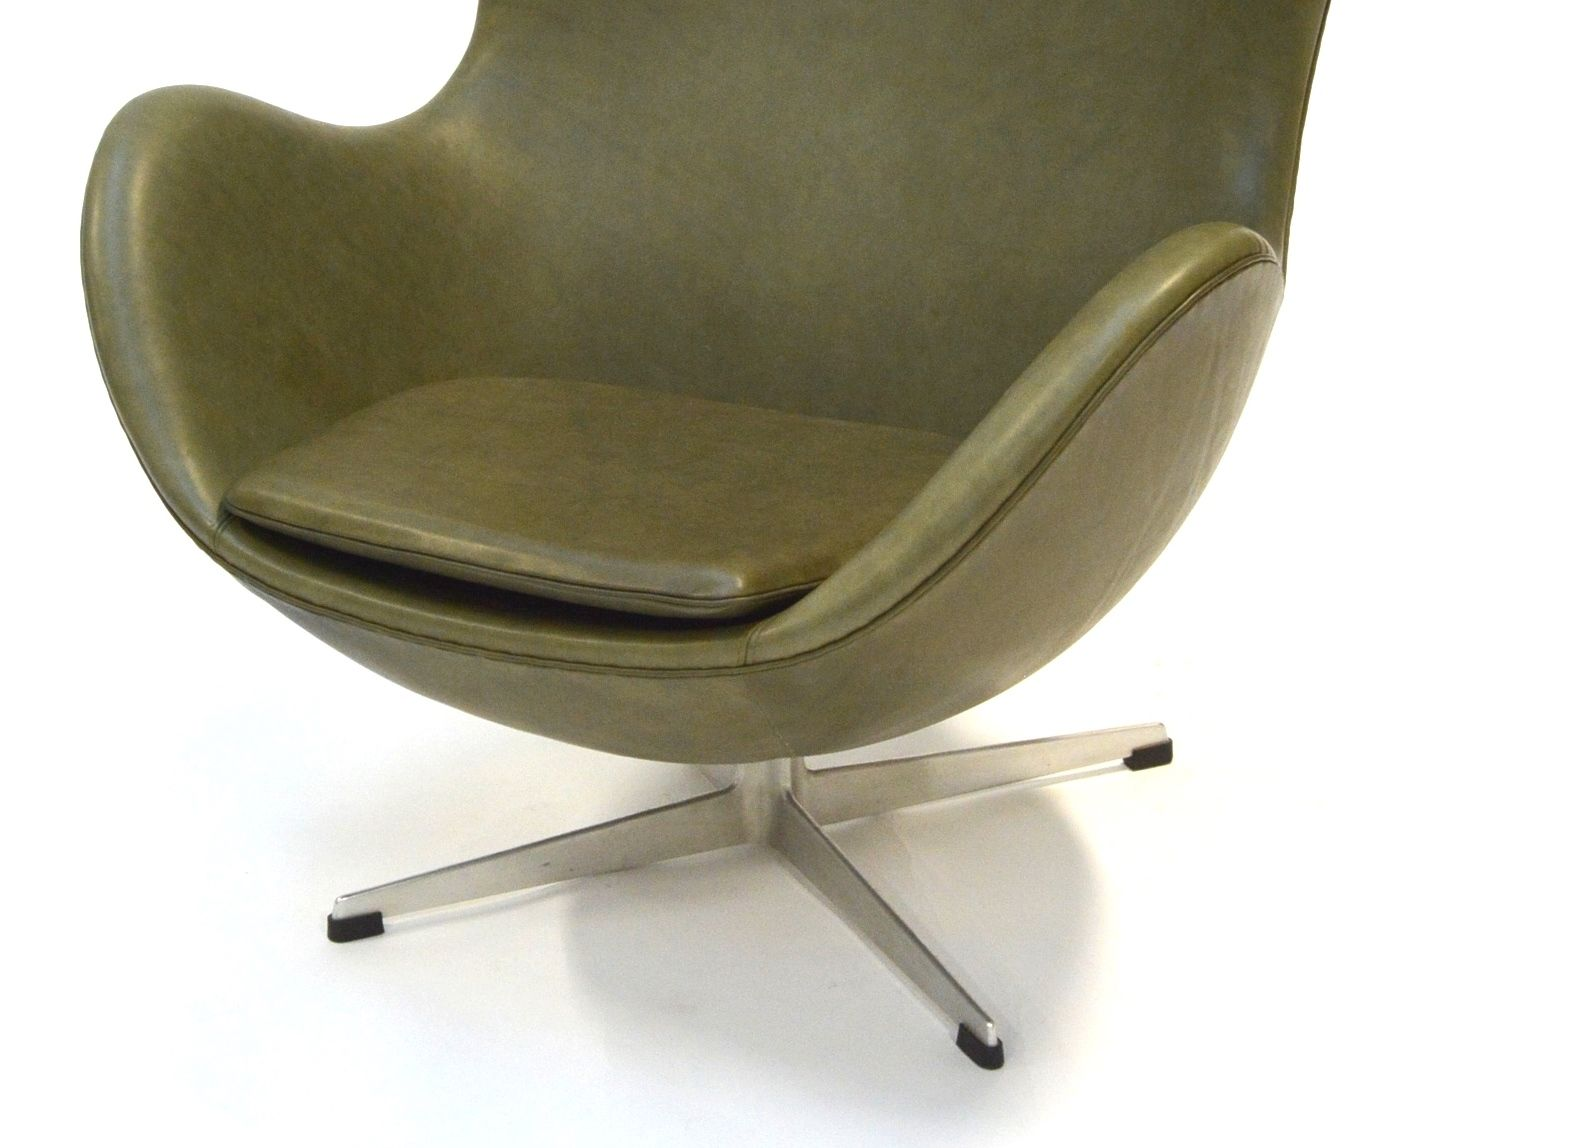 green egg chair by arne jacobsen for fritz hansen 1960s for sale at pamono. Black Bedroom Furniture Sets. Home Design Ideas